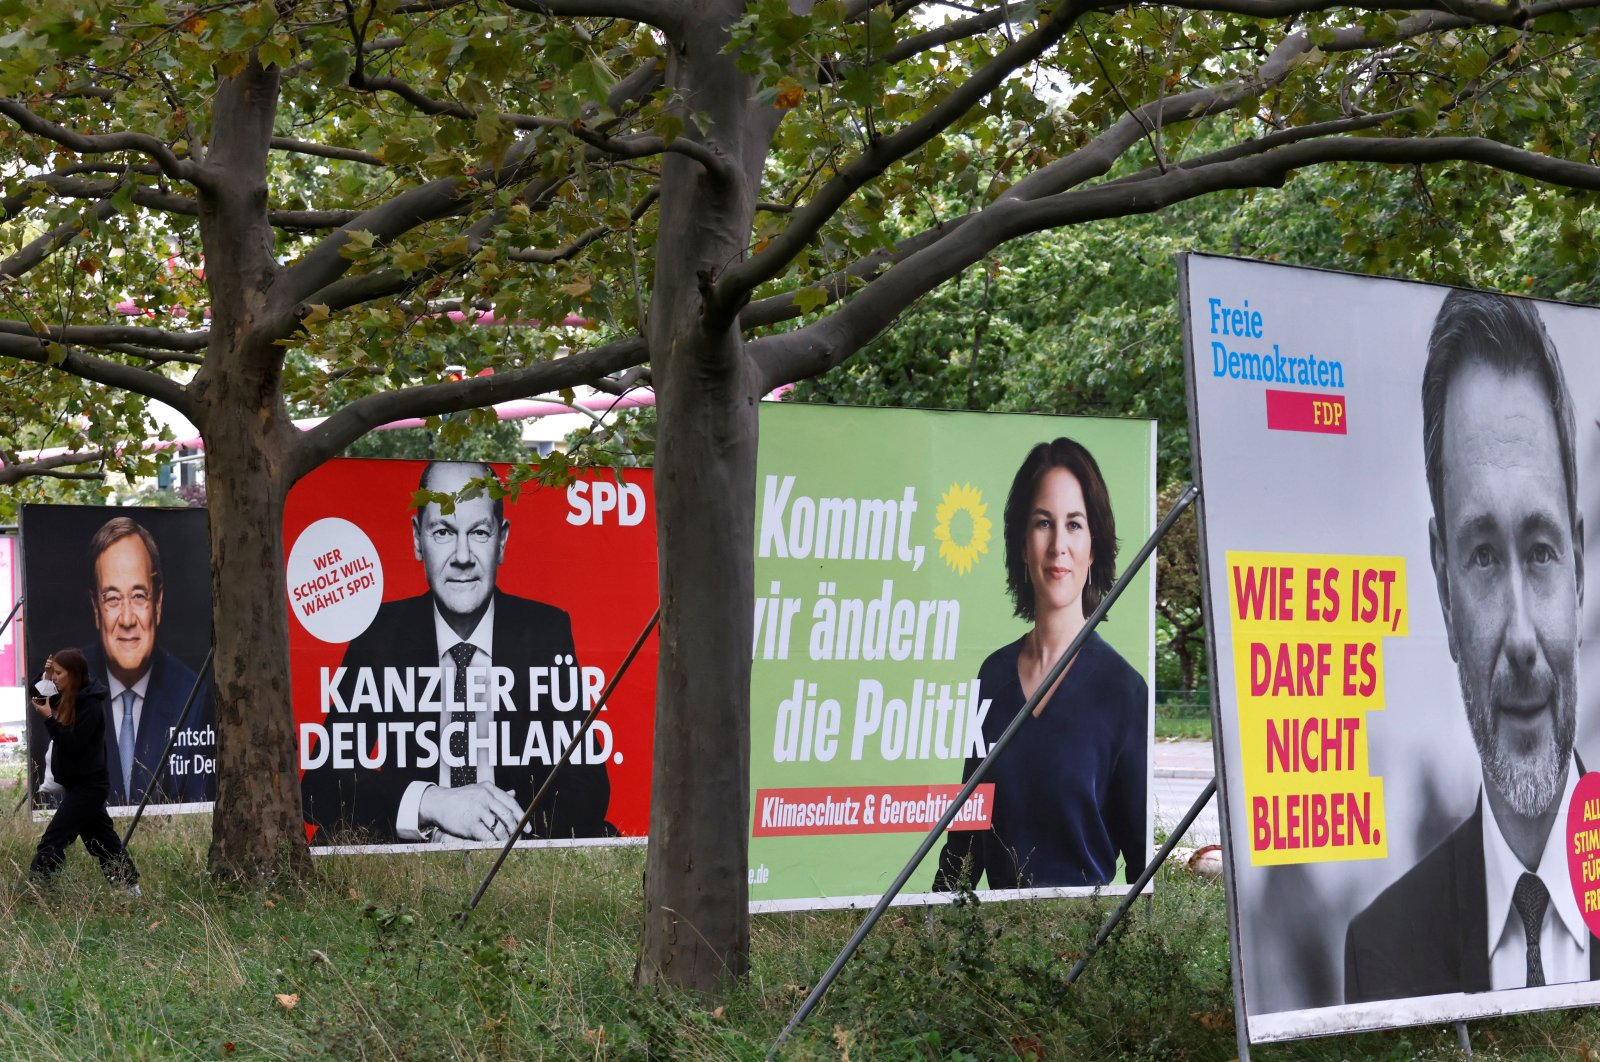 (L-R) Election posters of Germany's top candidates for chancellor, Armin Laschet, North Rhine-Westphalia's State Premier and Christian Democratic Union (CDU) leader; Olaf Scholz, German minister of finance of the Social Democratic Party (SPD); Annalena Baerbock, co-leader of Germany's Green party and Christian Lindner, leader of the Free Democratic Party of Germany (FDP) are pictured, in Berlin, Germany, Sept. 16, 2021. (Reuters Photo)